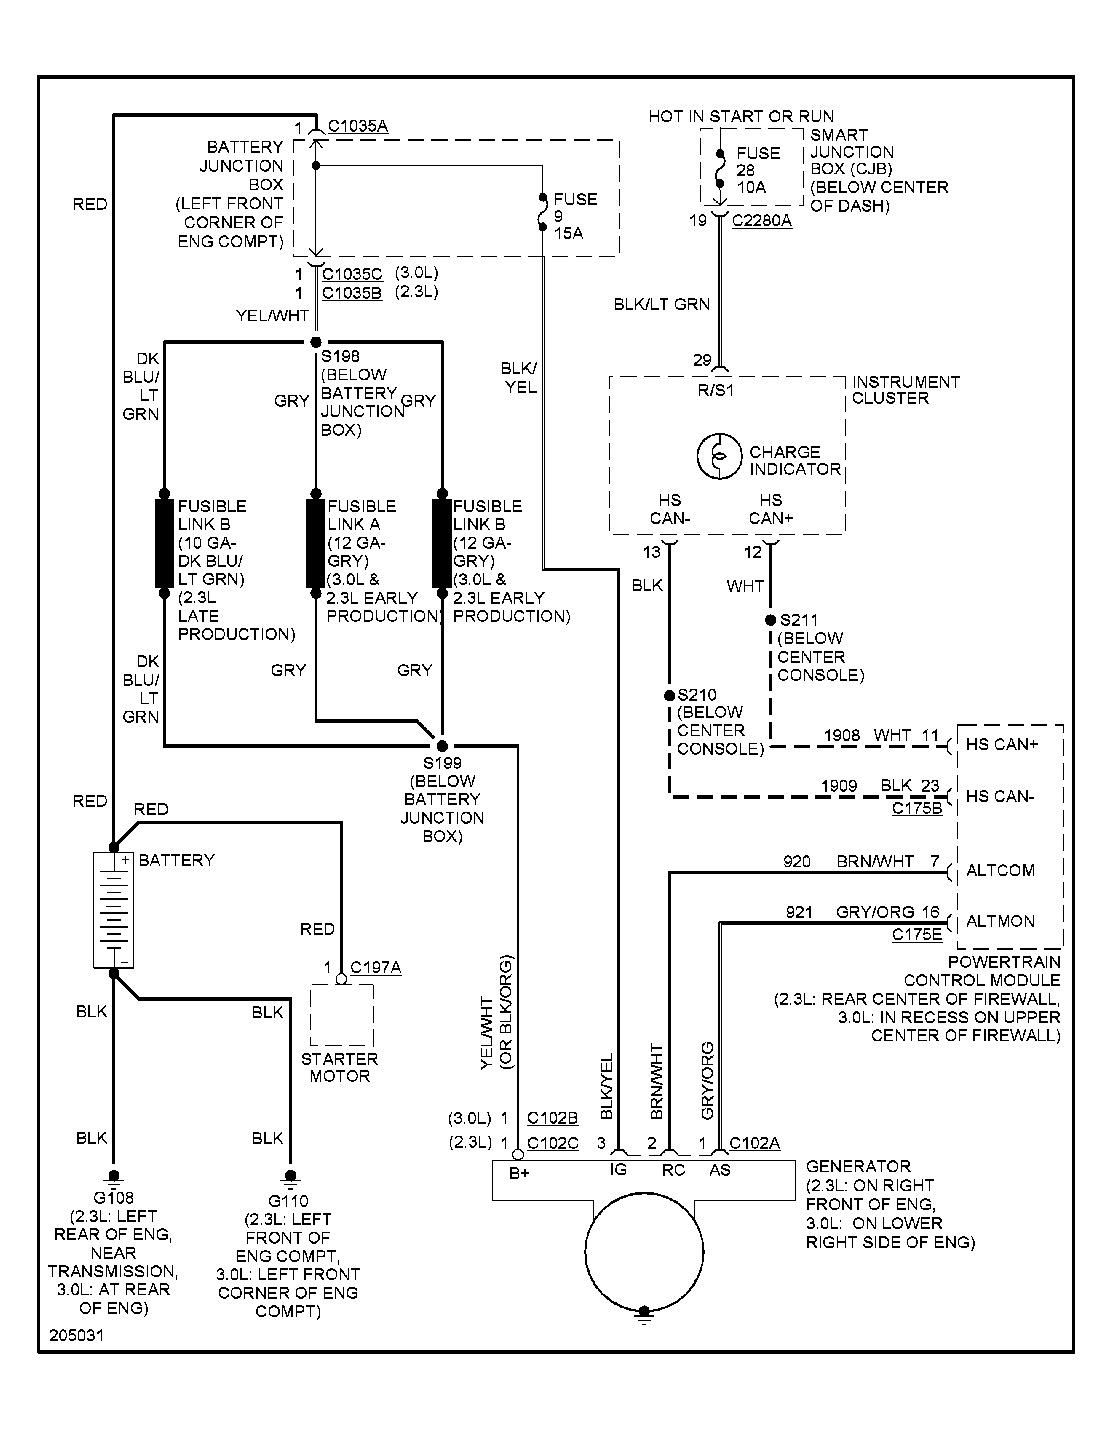 Original on Ford Escape Alternator Wiring Diagram